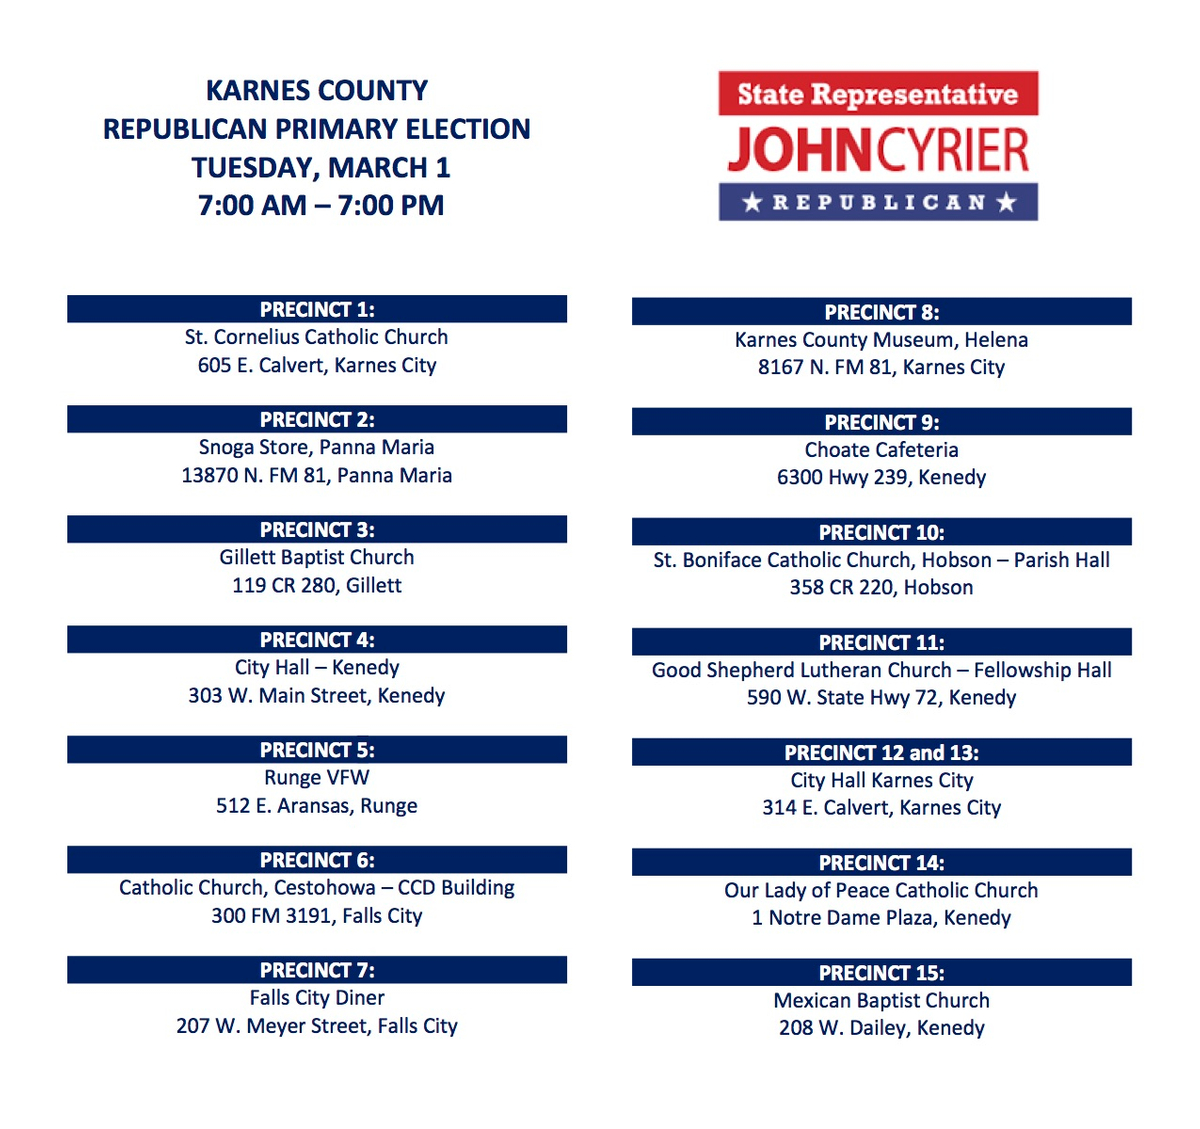 Karnes County Republican Primary Election 2016 copy.jpg